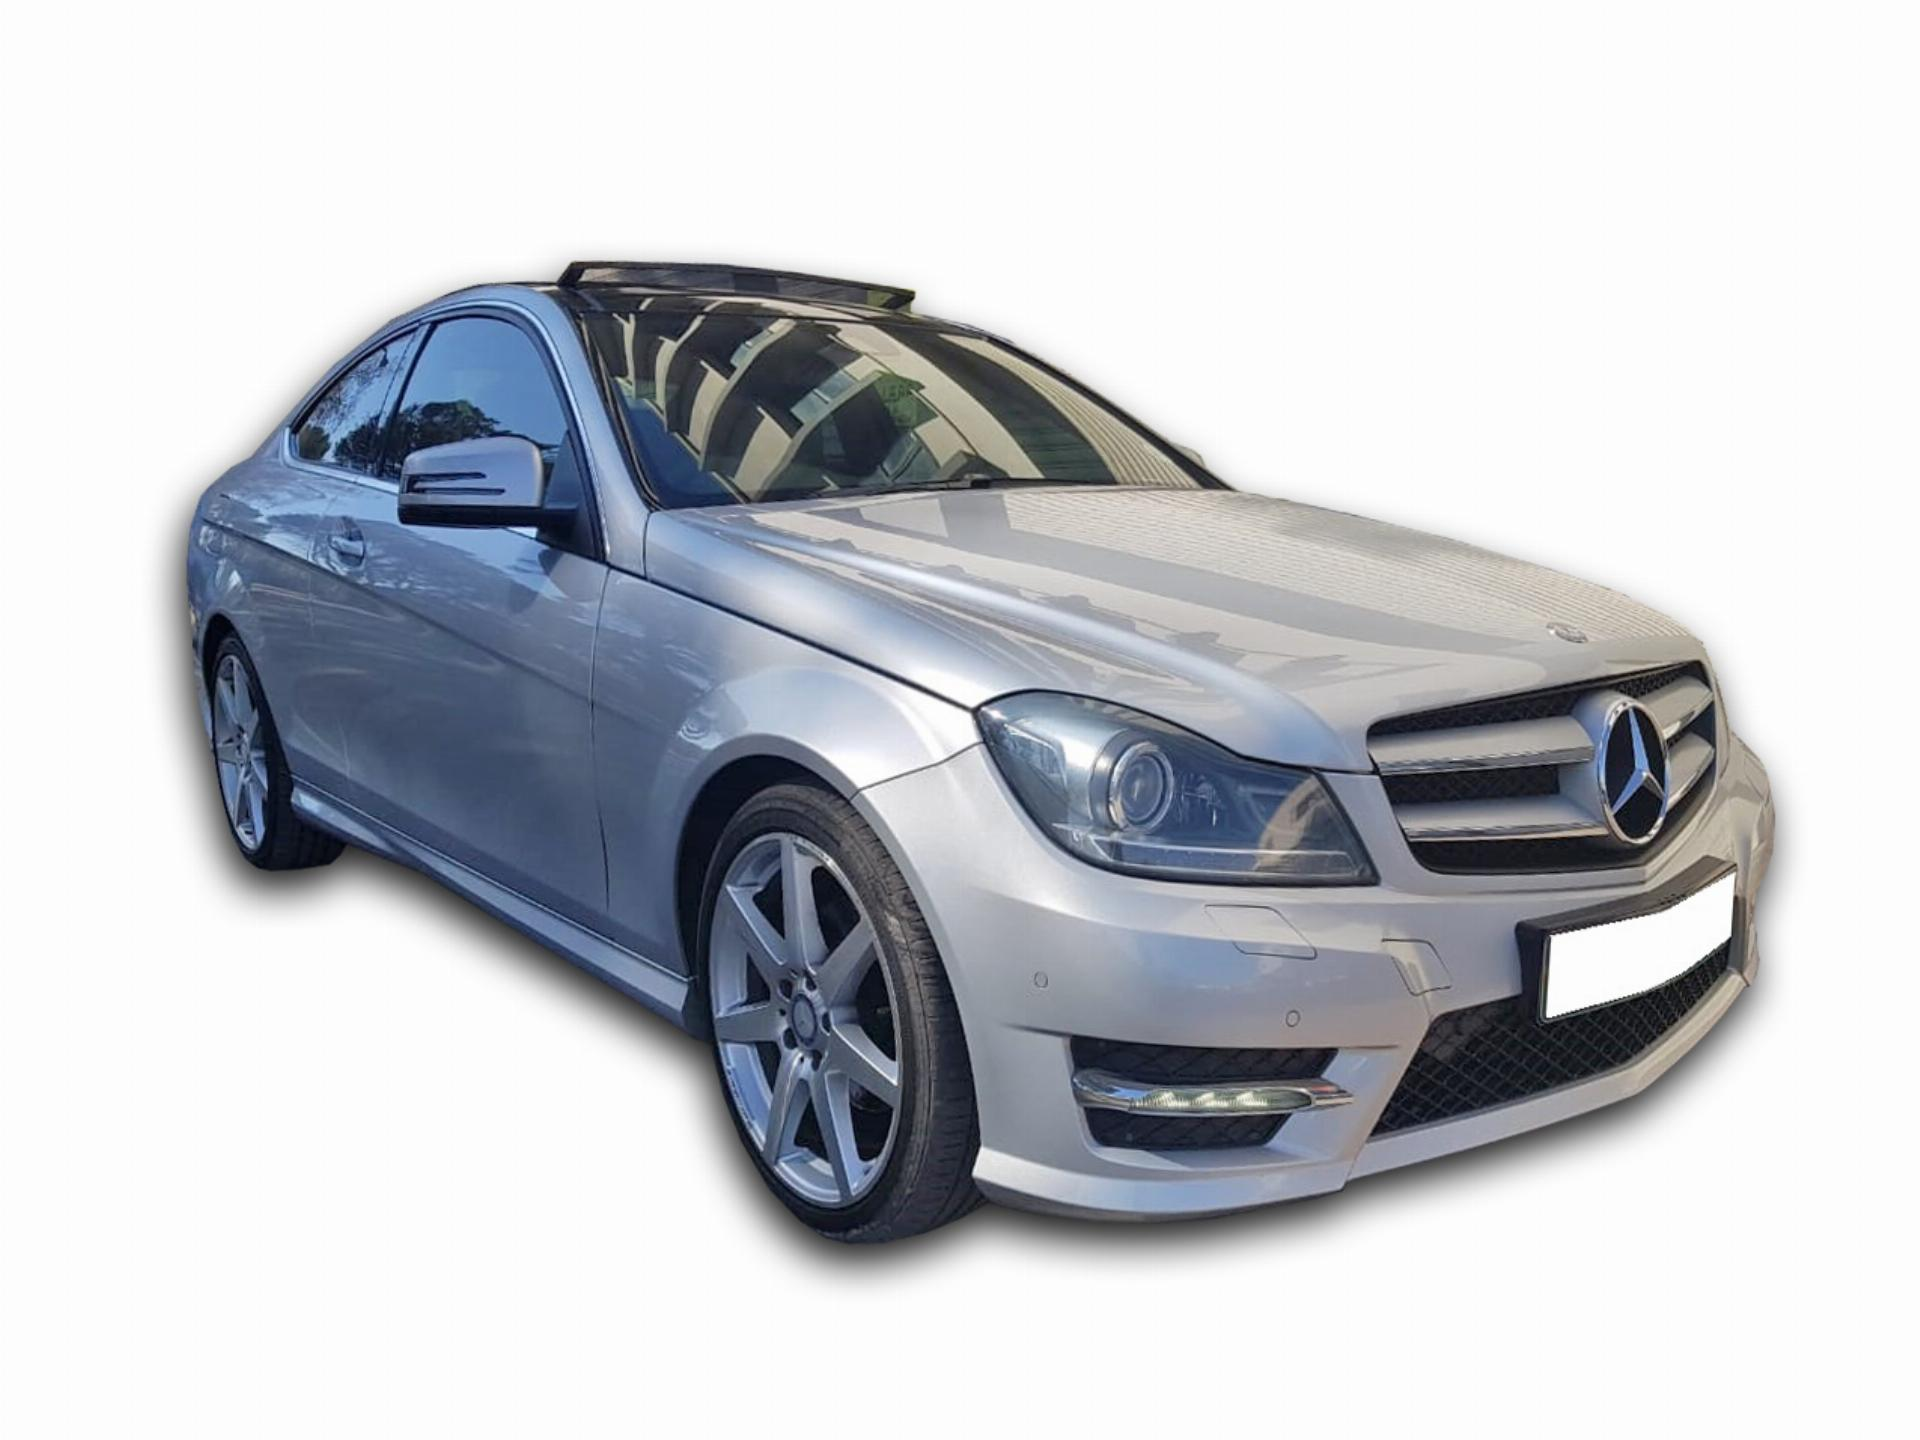 Mercedes Benz C180 Amg Coupe